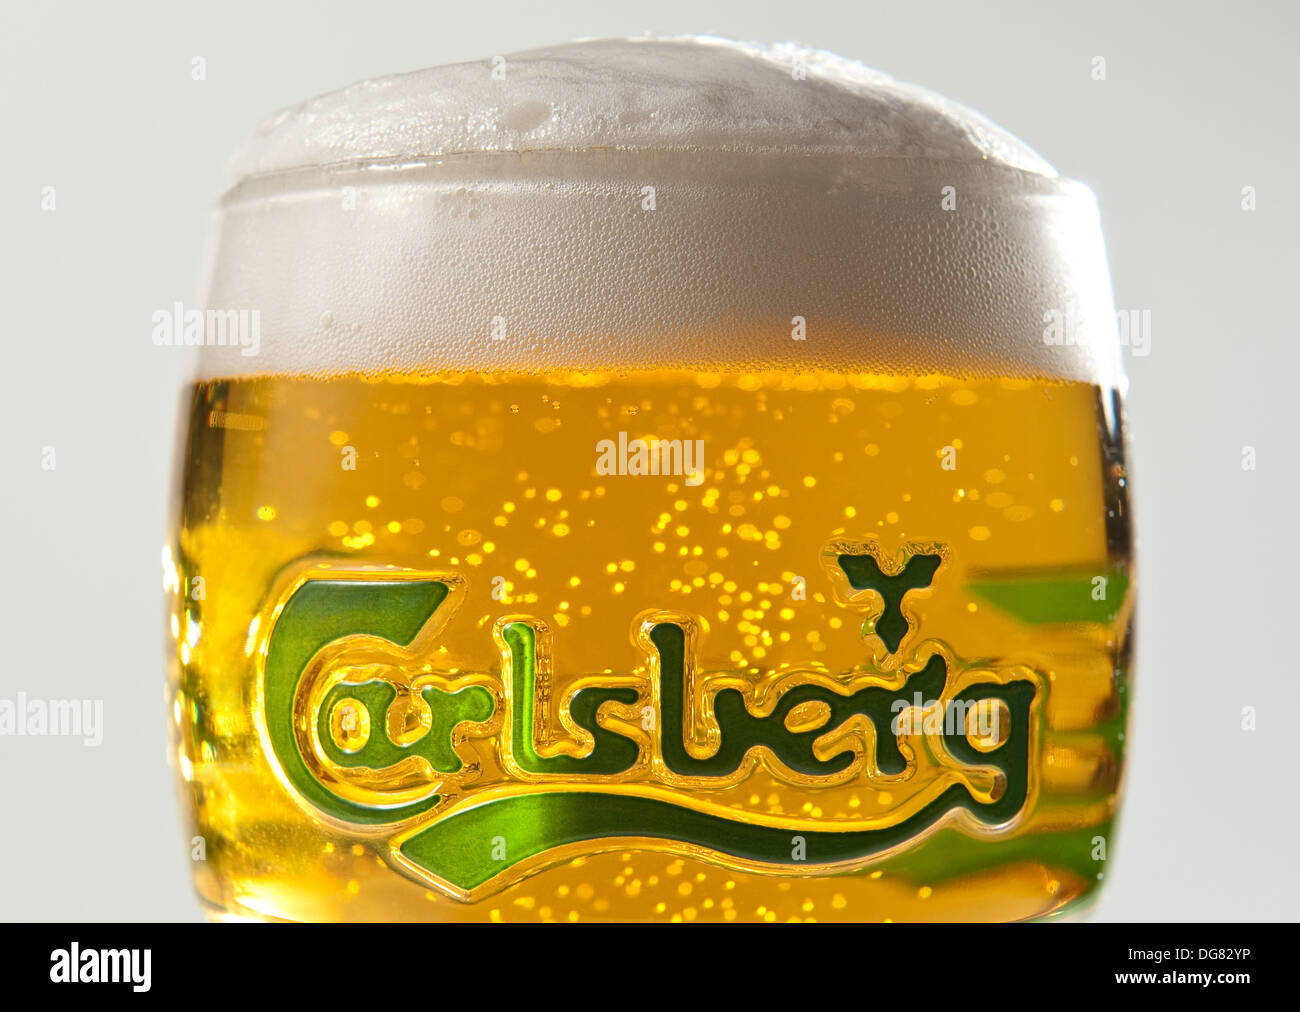 Beer - Carlsberg lager . Probably the best lager in the world. - Stock Image